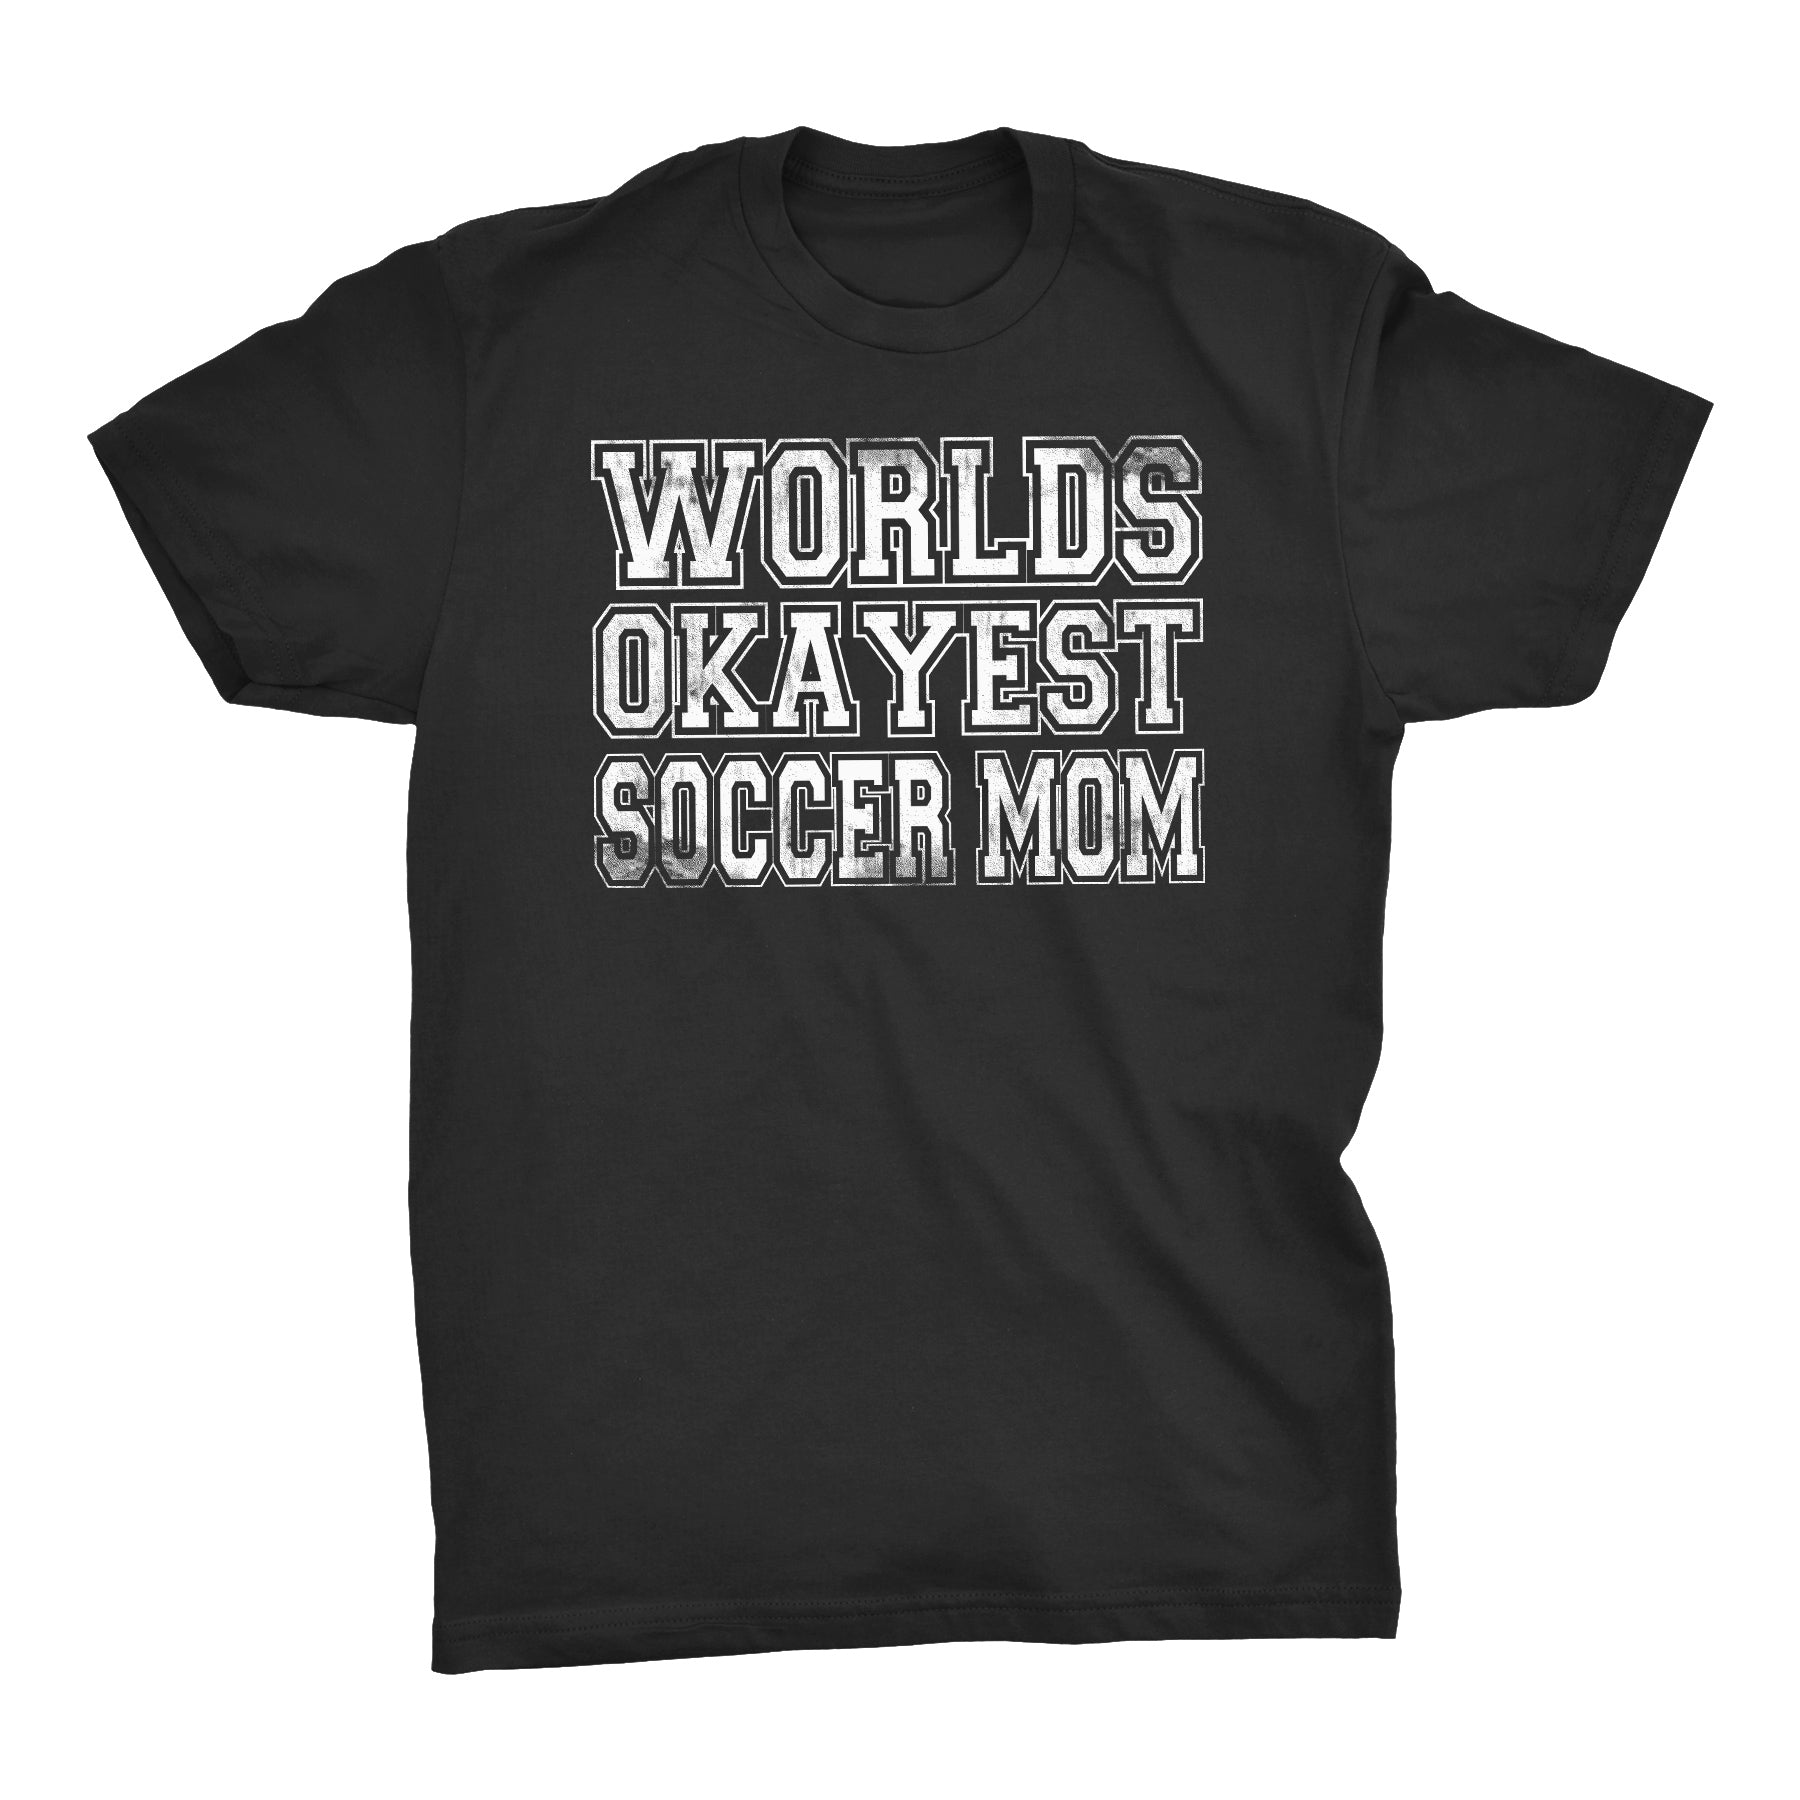 World's OKAYEST Soccer Mom - Youth Soccer T-shirt